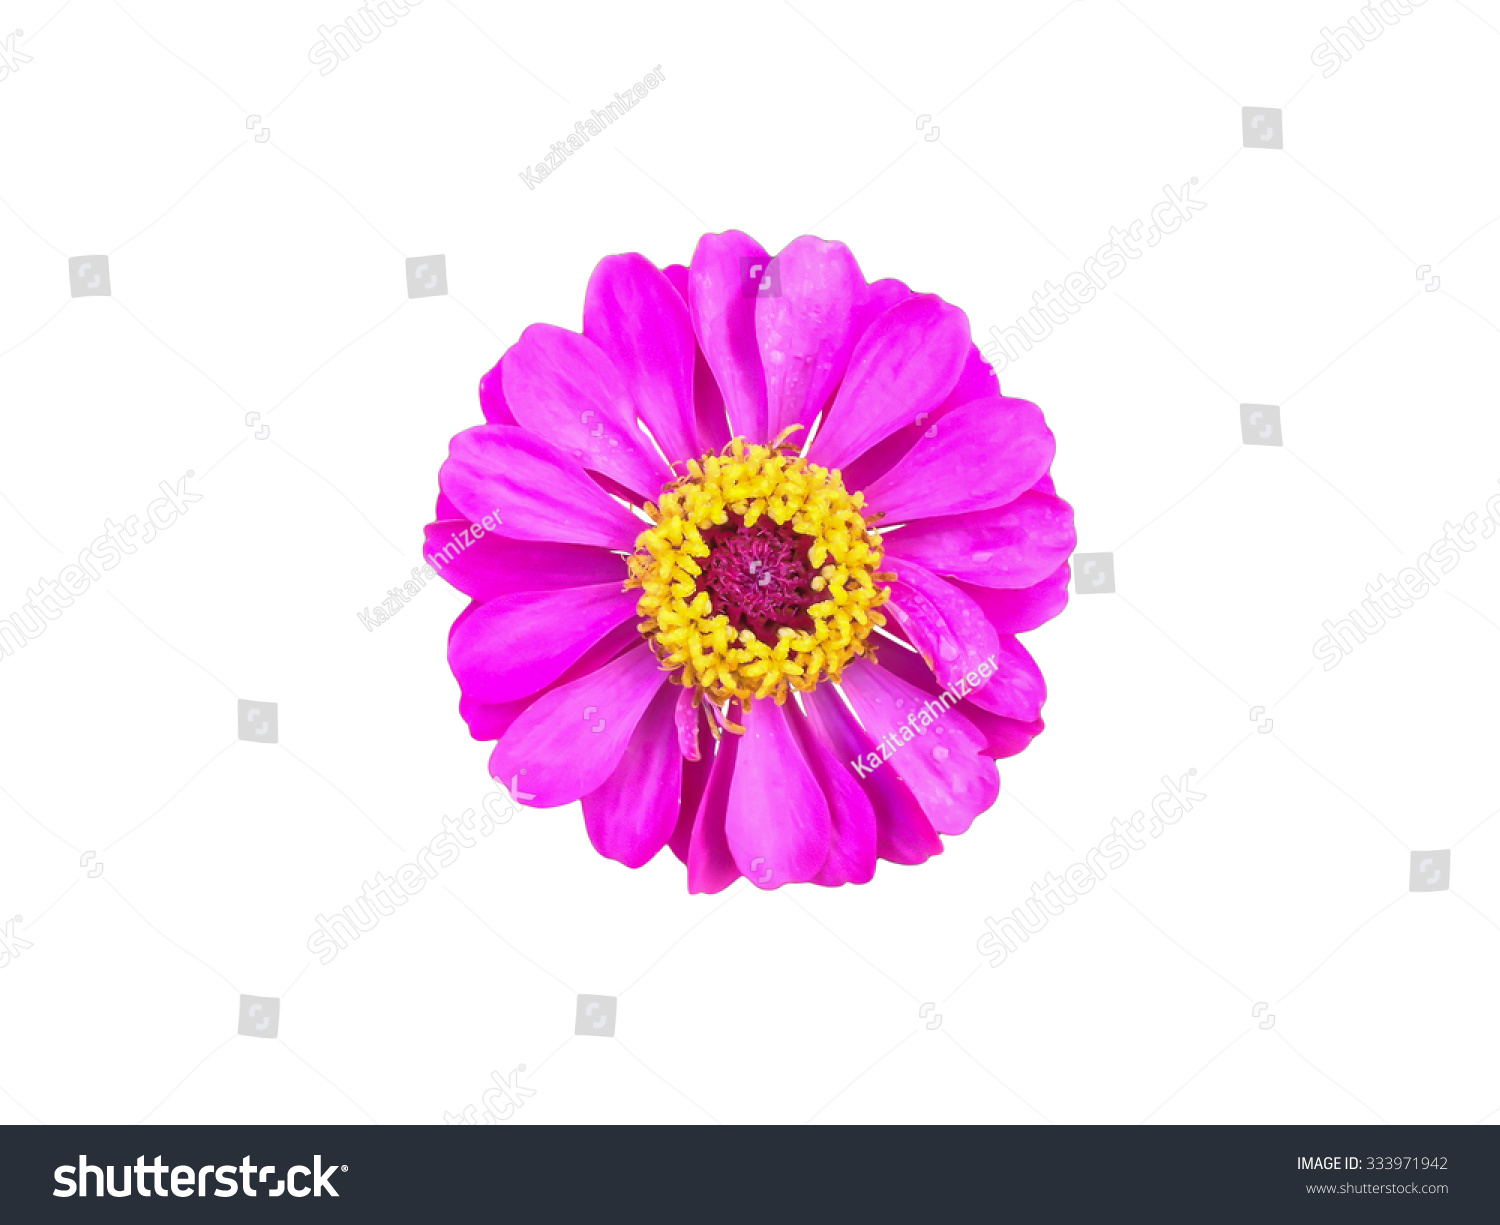 With Clipping Path Isolated Single Pink Flower Zinnia On White